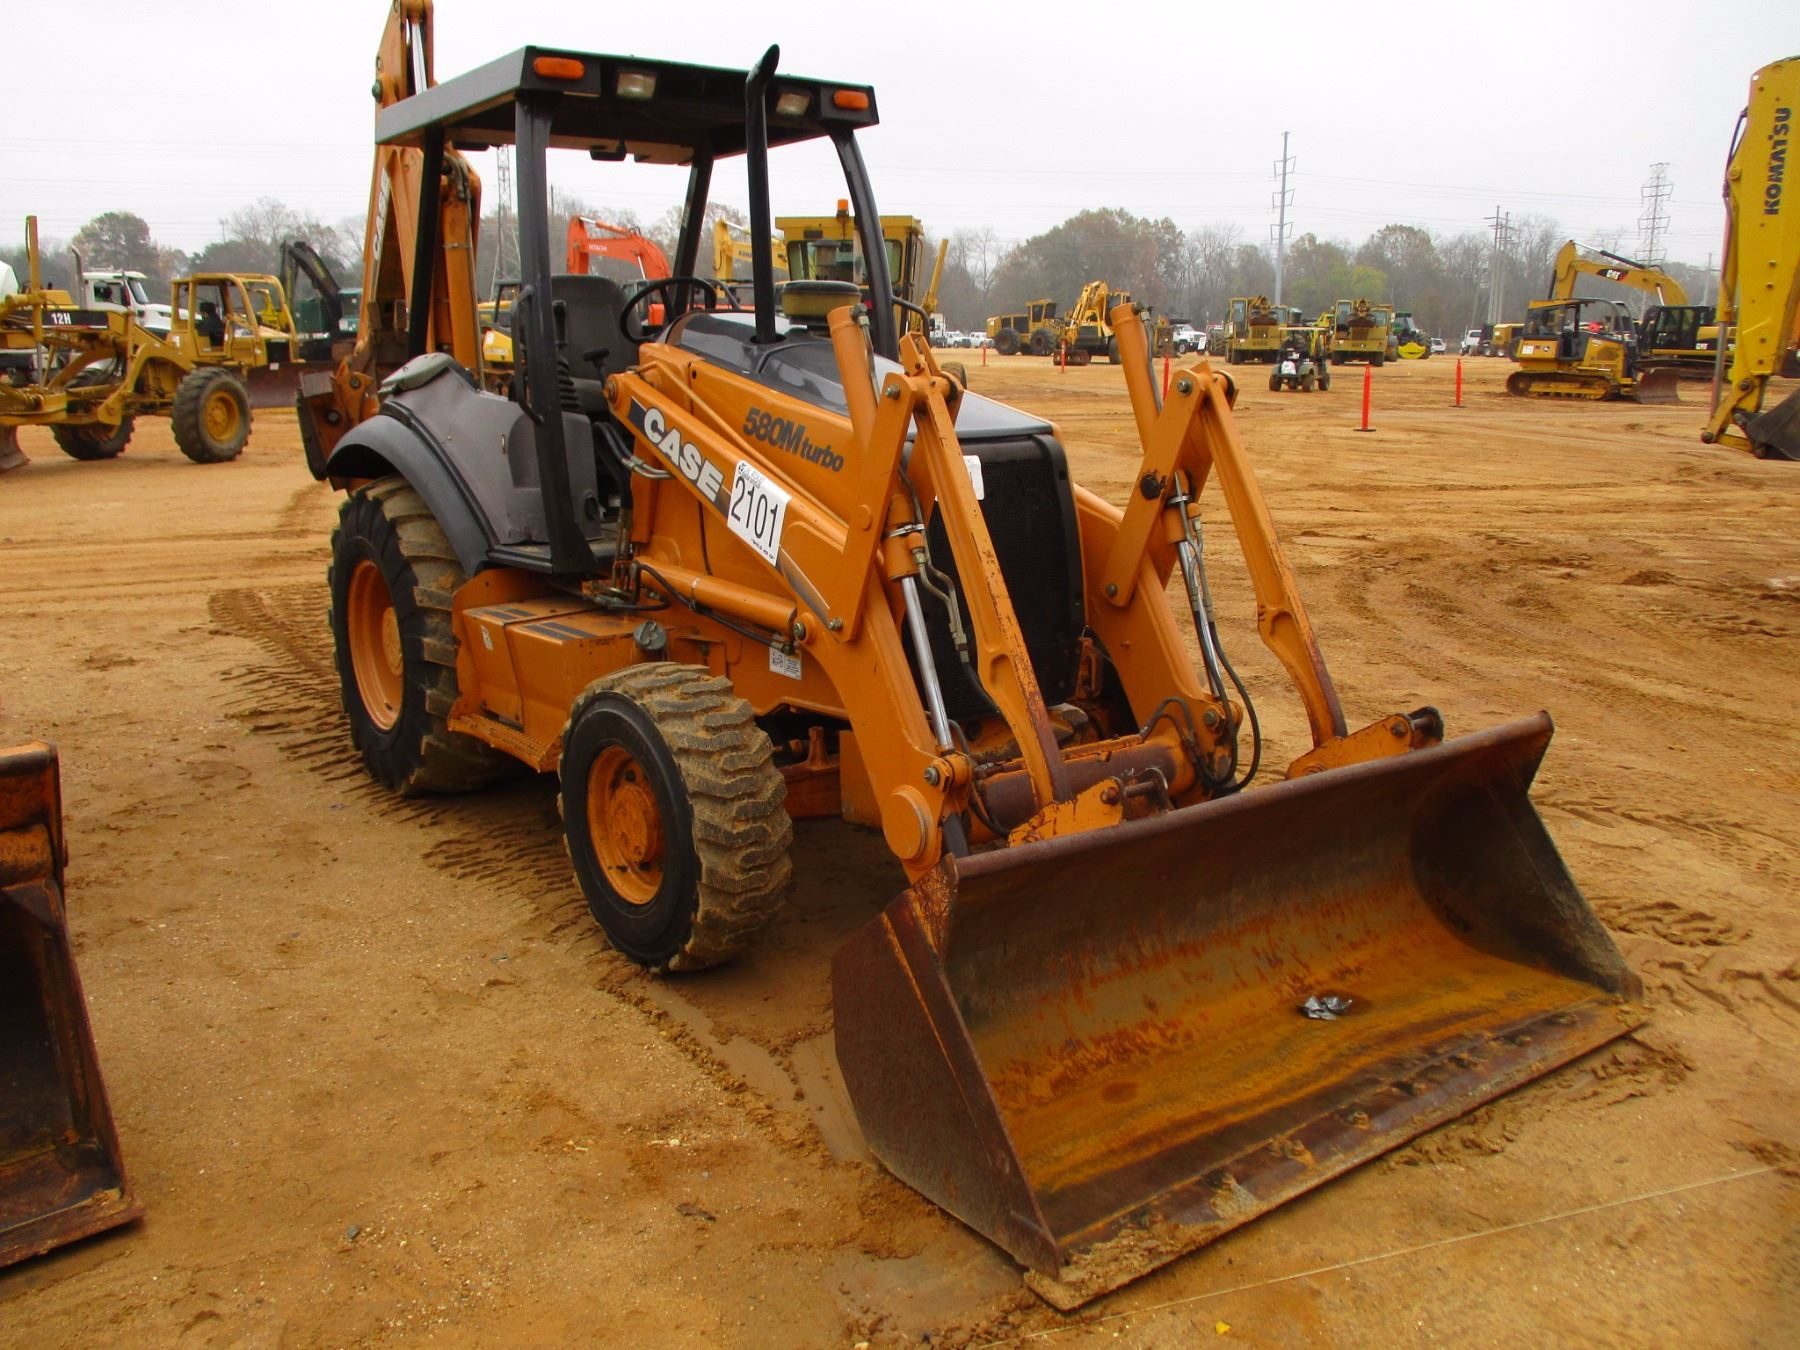 hight resolution of  image 2 2003 case 580m loader backhoe vin sn jjg0309088 4x4